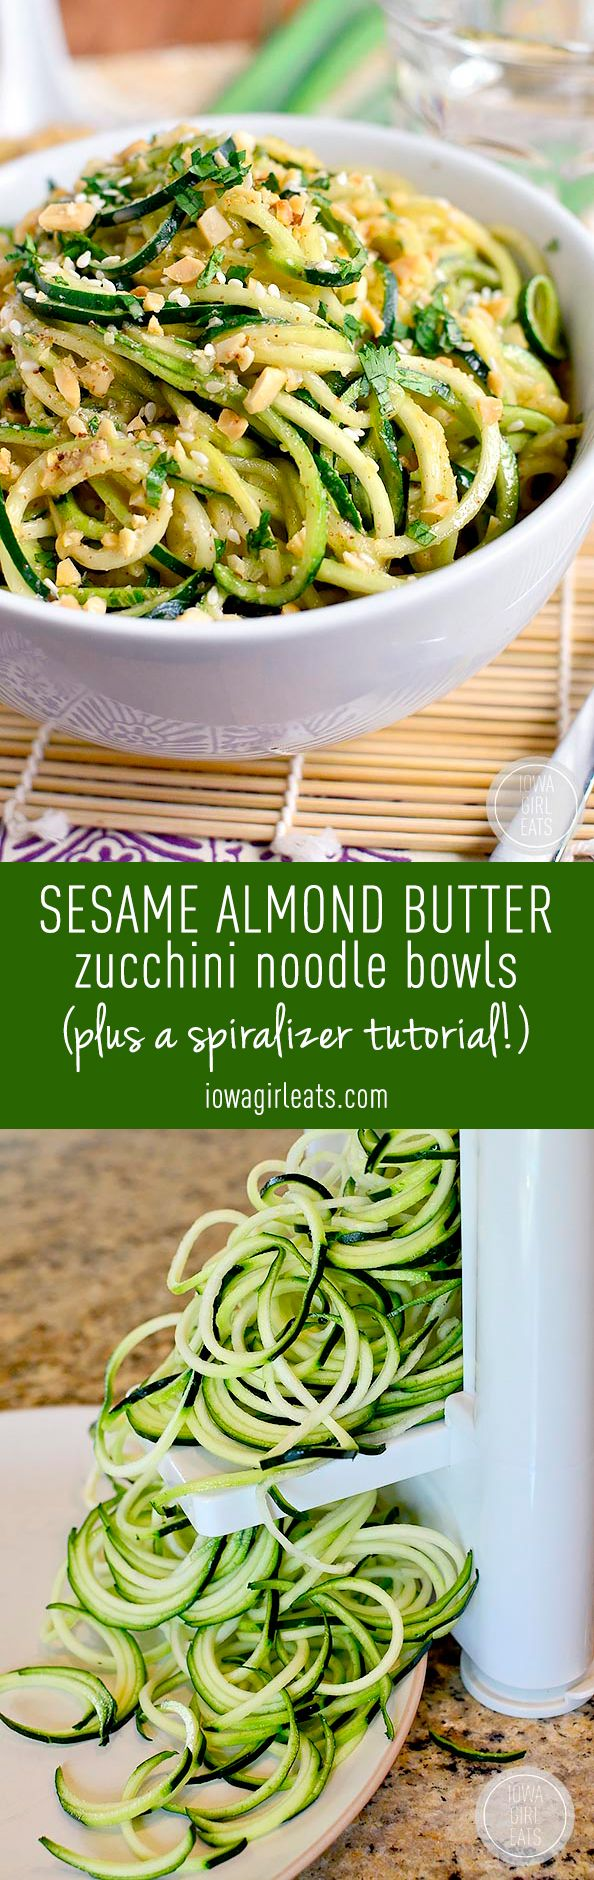 Sesame Almond Butter Zucchini Noodle Bowls are a veggie-based spin on peanut…